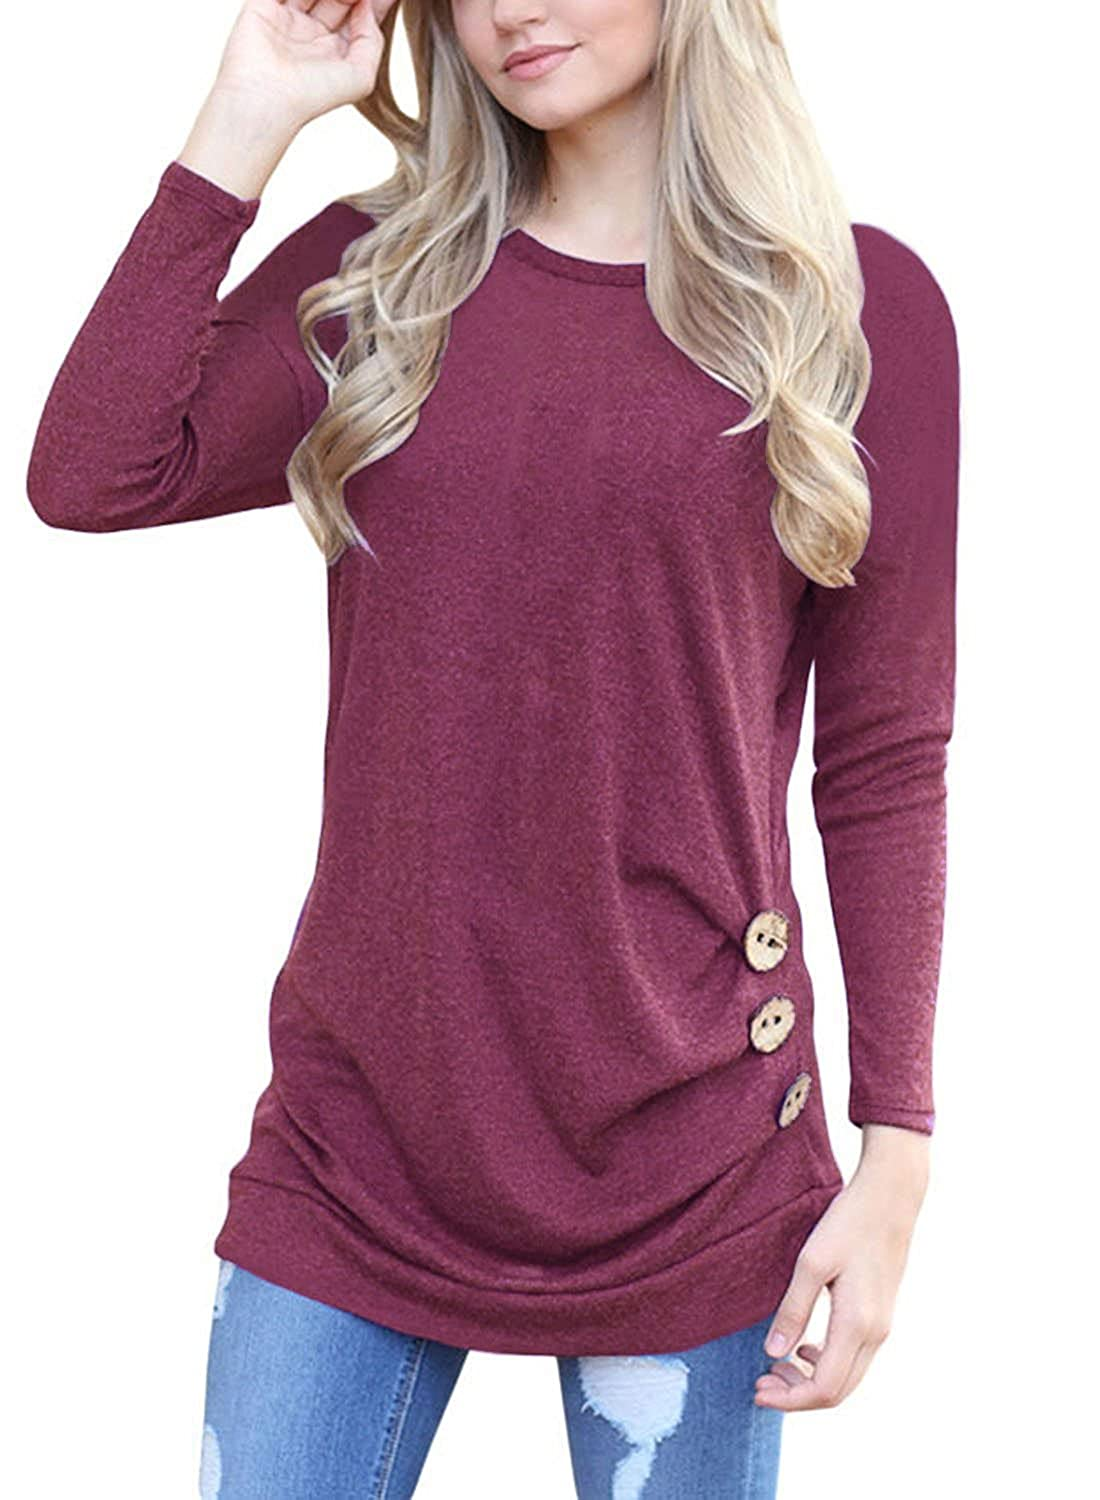 Mixmax Women Long Sleeve Loose Button Trim Blouse Solid Color Round Neck Tunic T-Shirt Top